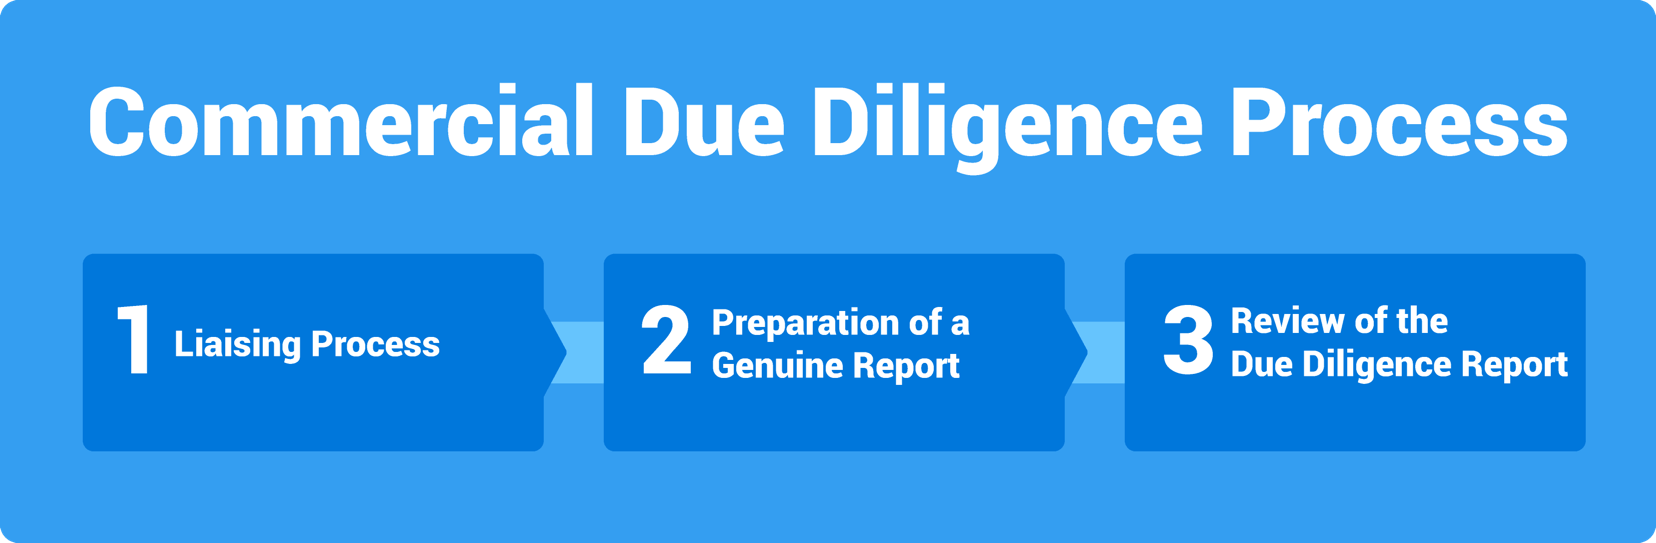 Commercial Due Diligence Process